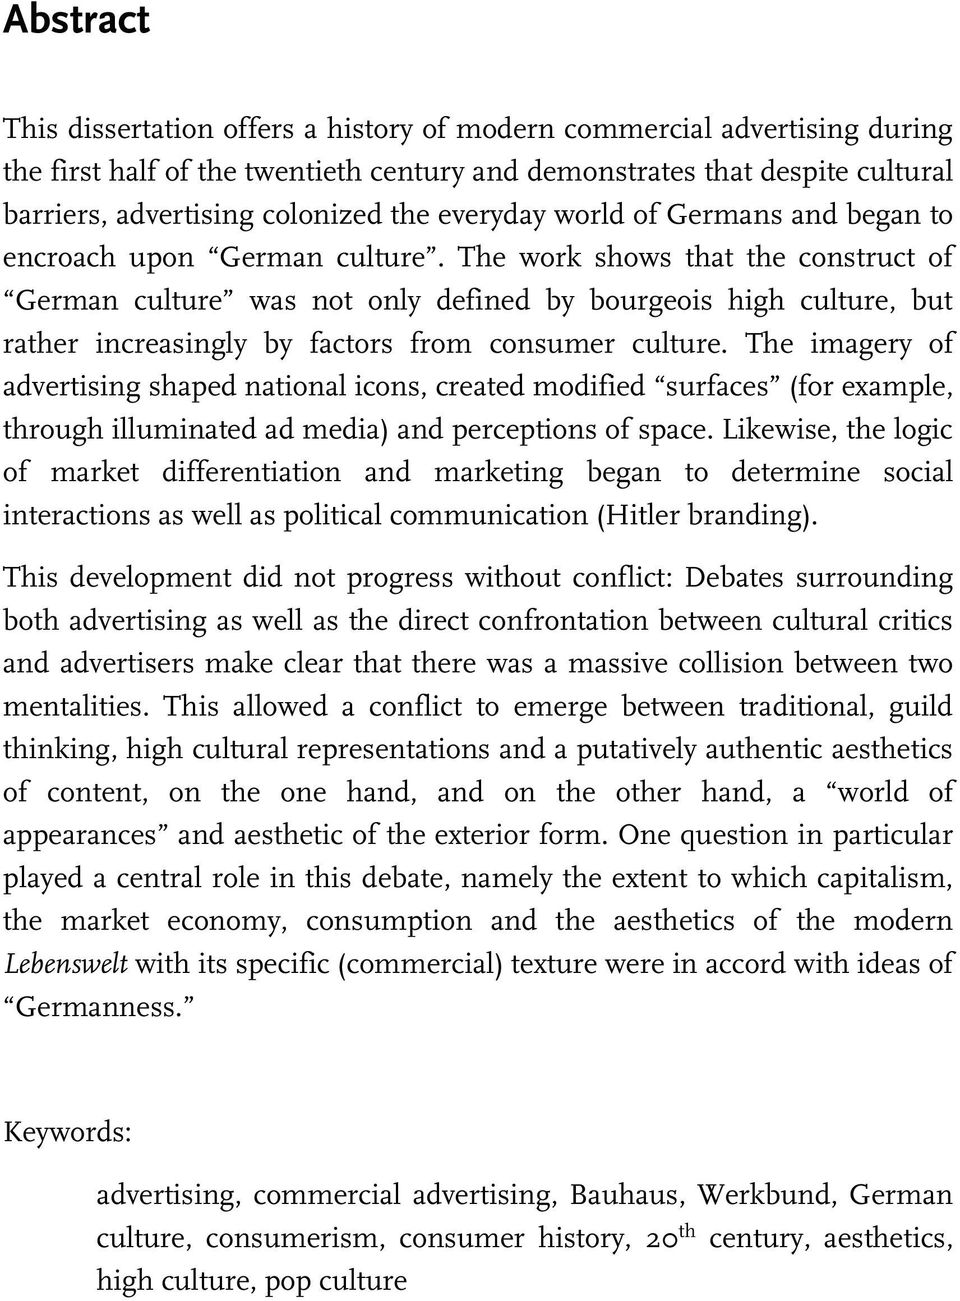 The work shows that the construct of German culture was not only defined by bourgeois high culture, but rather increasingly by factors from consumer culture.